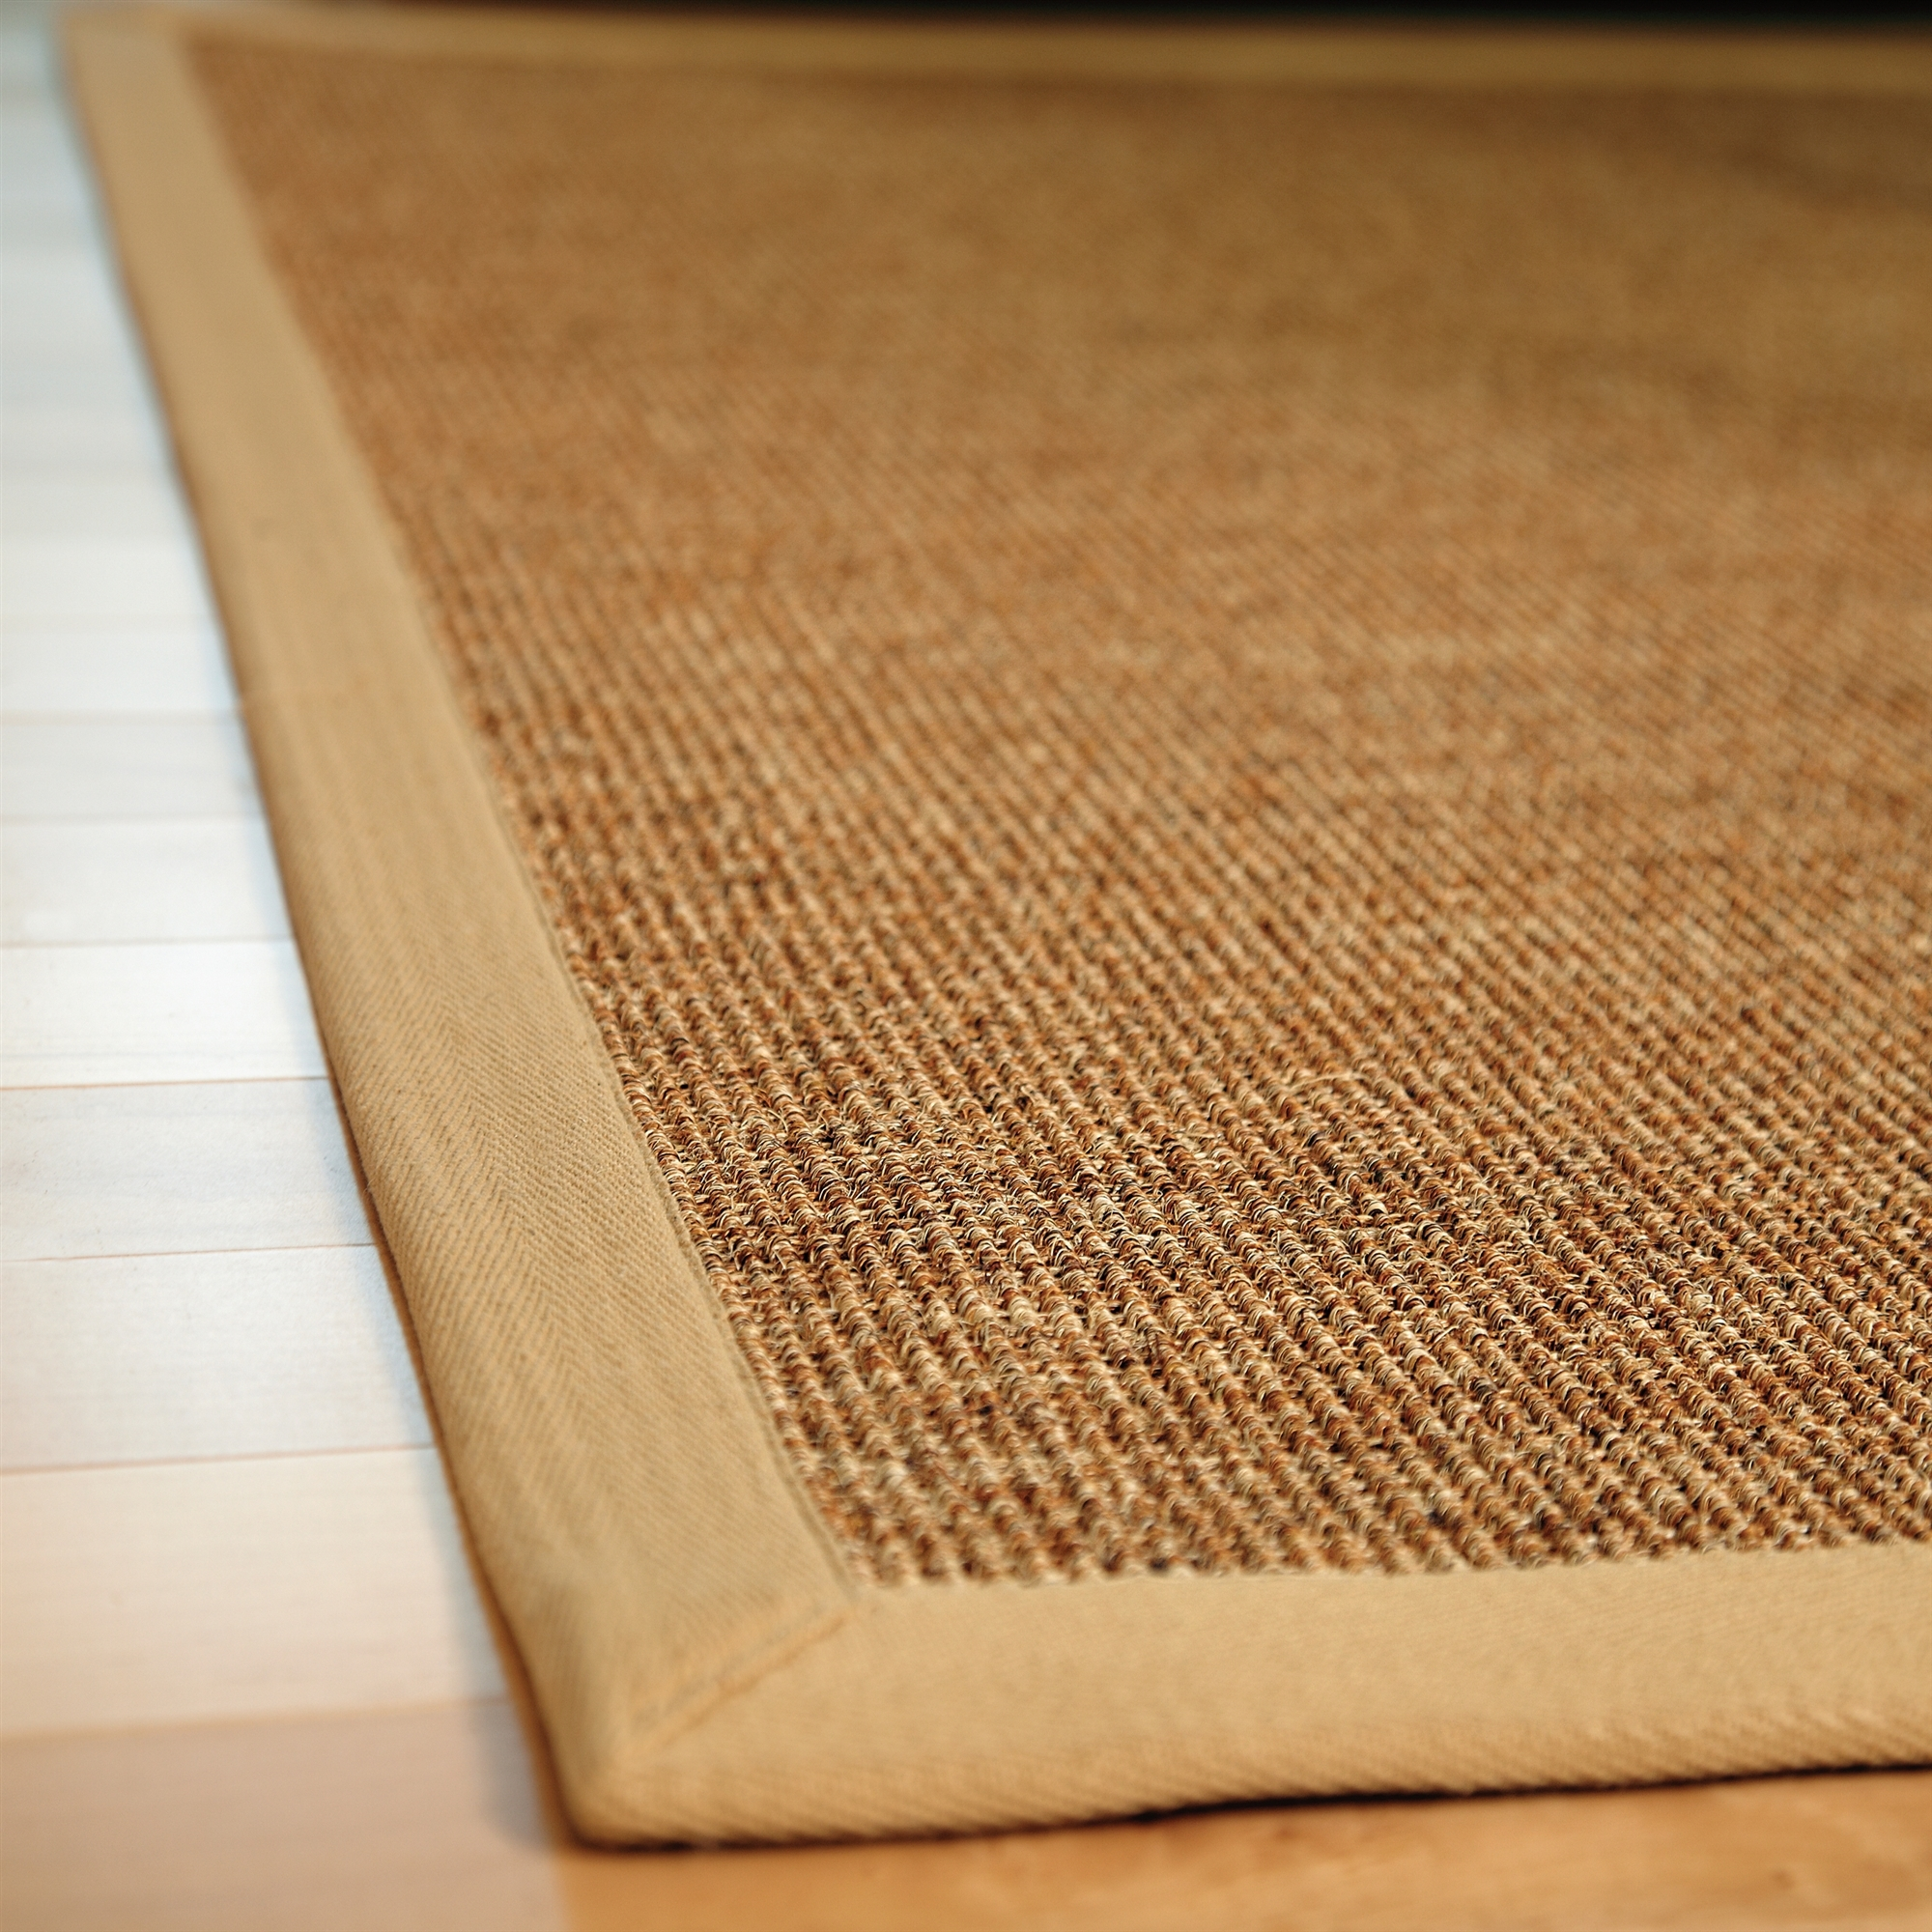 Flooring Sisal Rug Ikea Hall Runner Rugs Ikea Lappljung Rug Throughout Hallway Runner Rugs Ikea (#6 of 20)